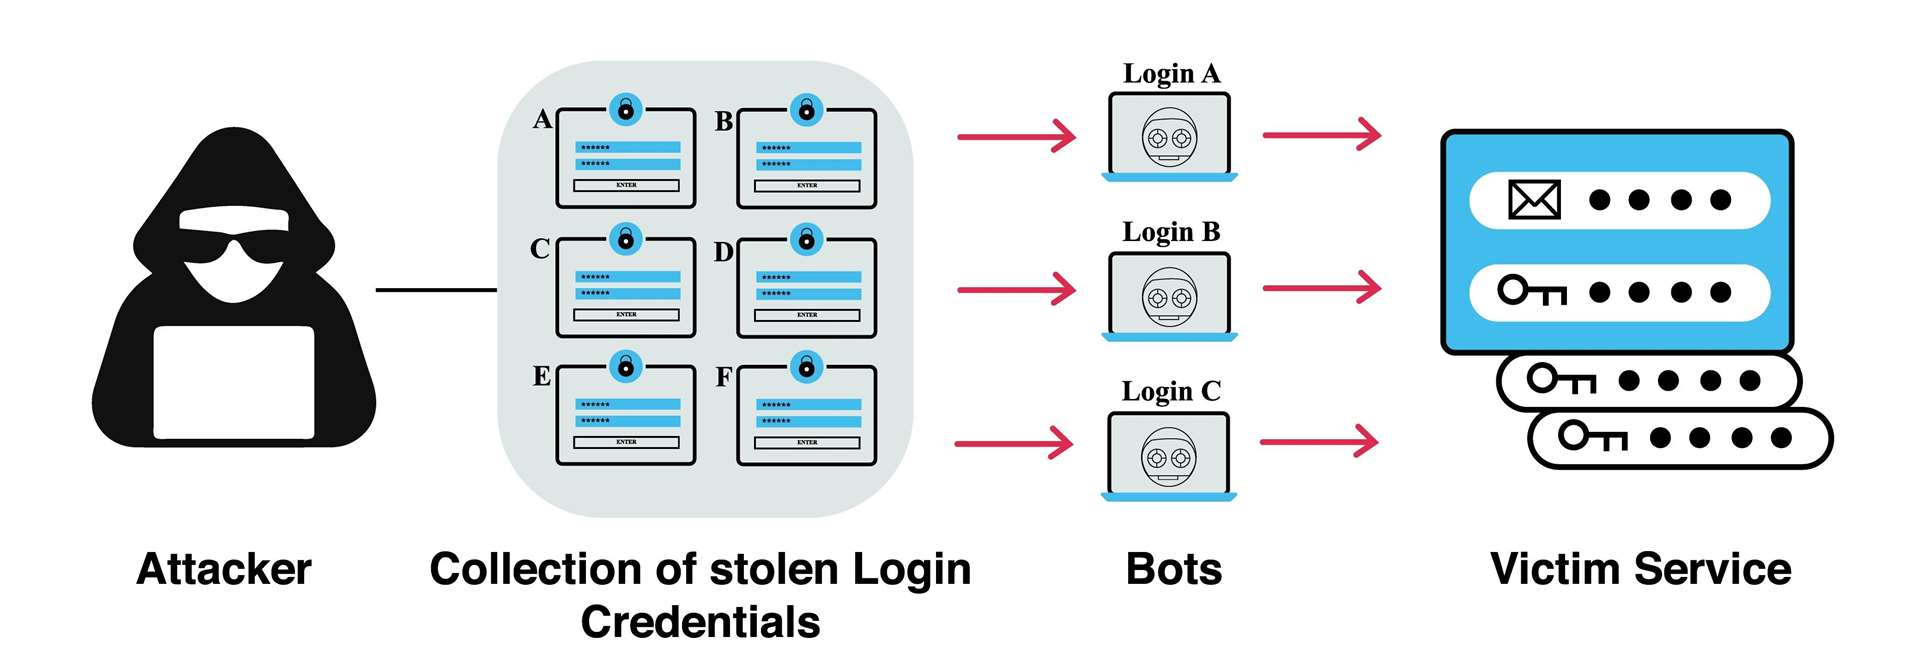 Password spraying is an effective way to access online platforms from one compromised login